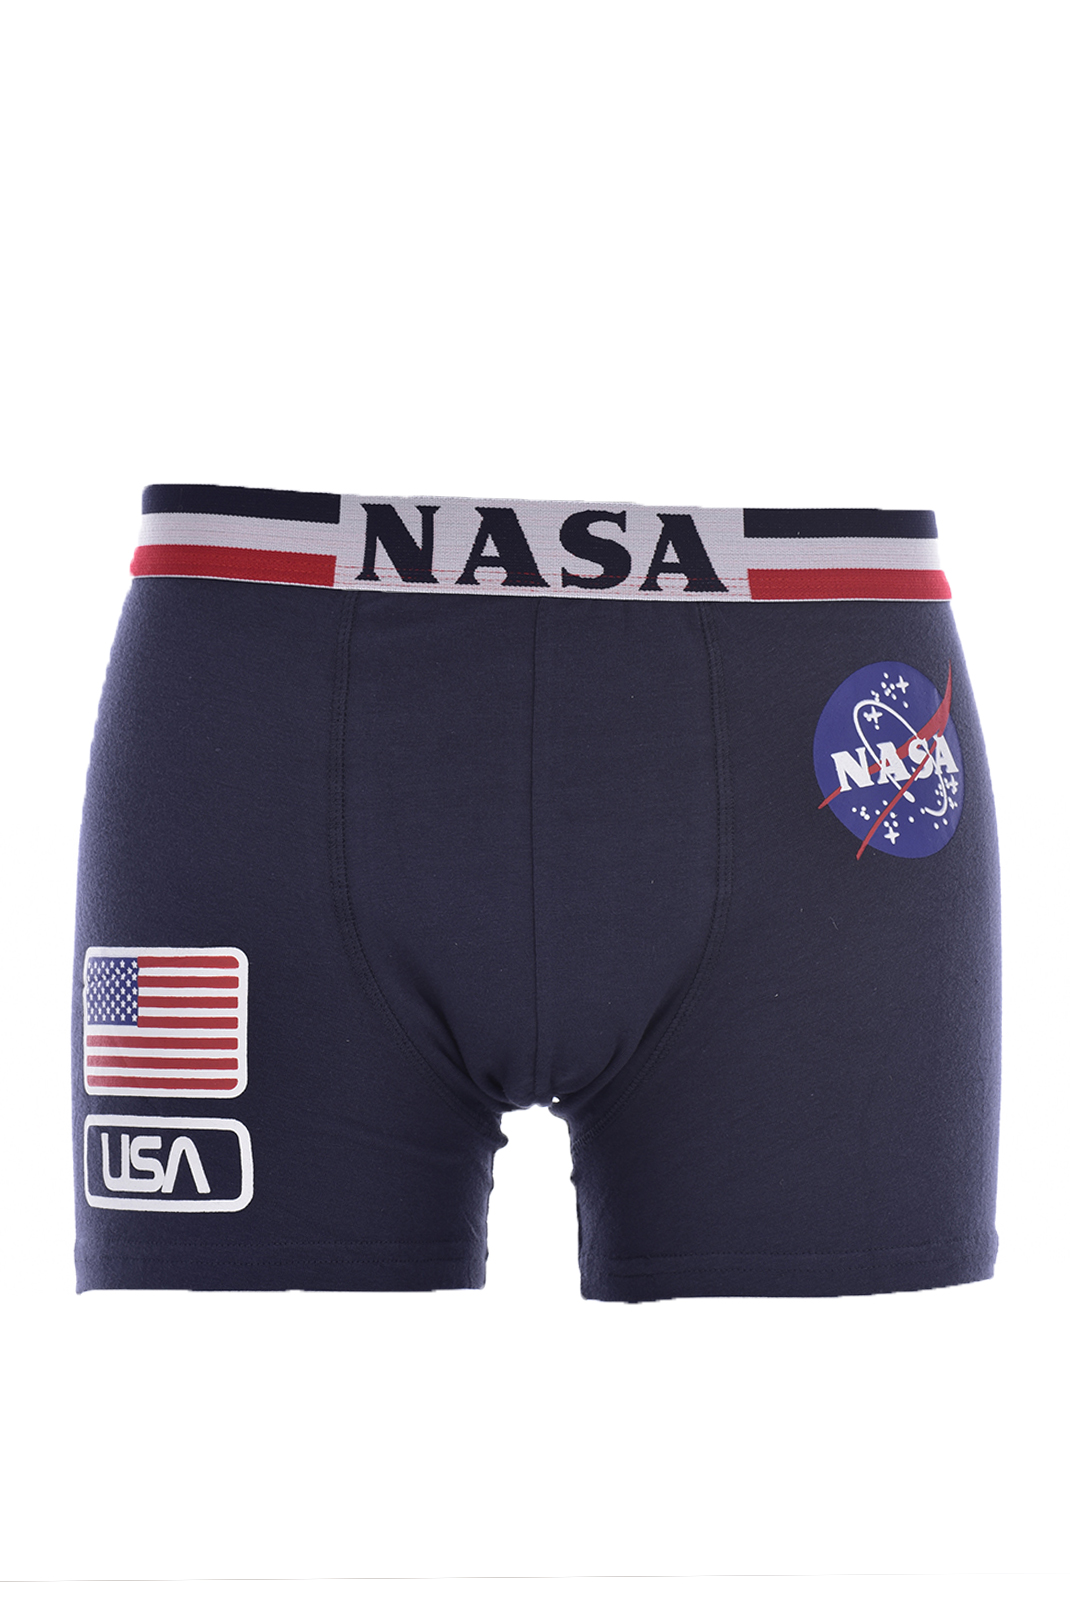 Slips-Caleçons  Nasa FLAG-USA BOXER NAVY